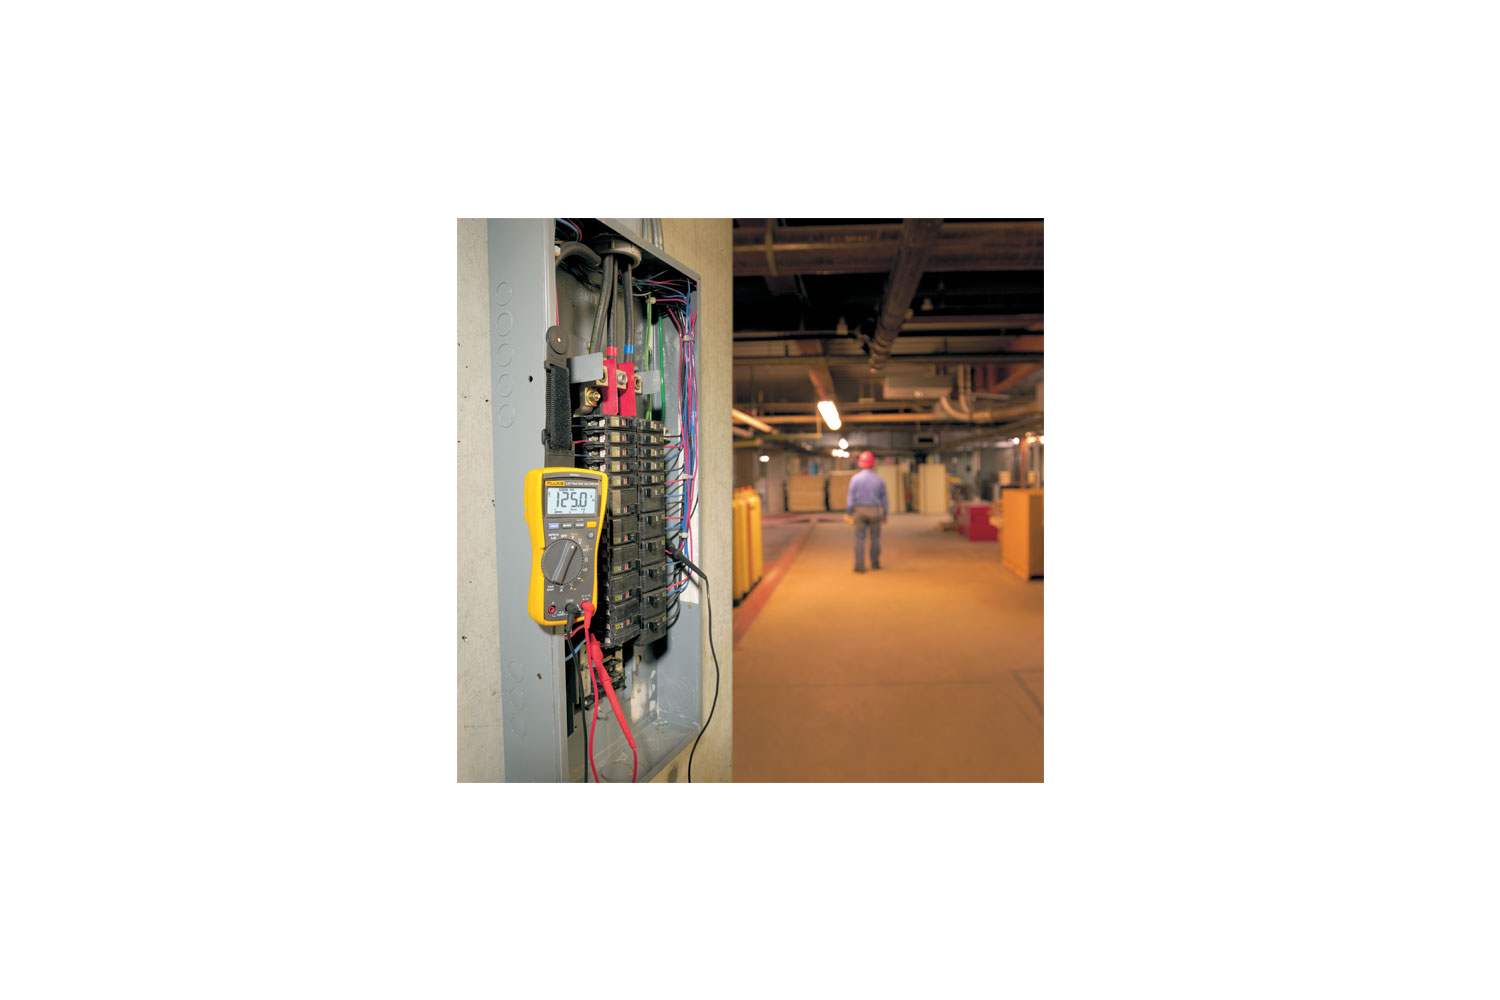 Fluke 117 The Ideal Multimeter For Electricians Wiring A Simple Lighting Circuit Sparkyfactscouk